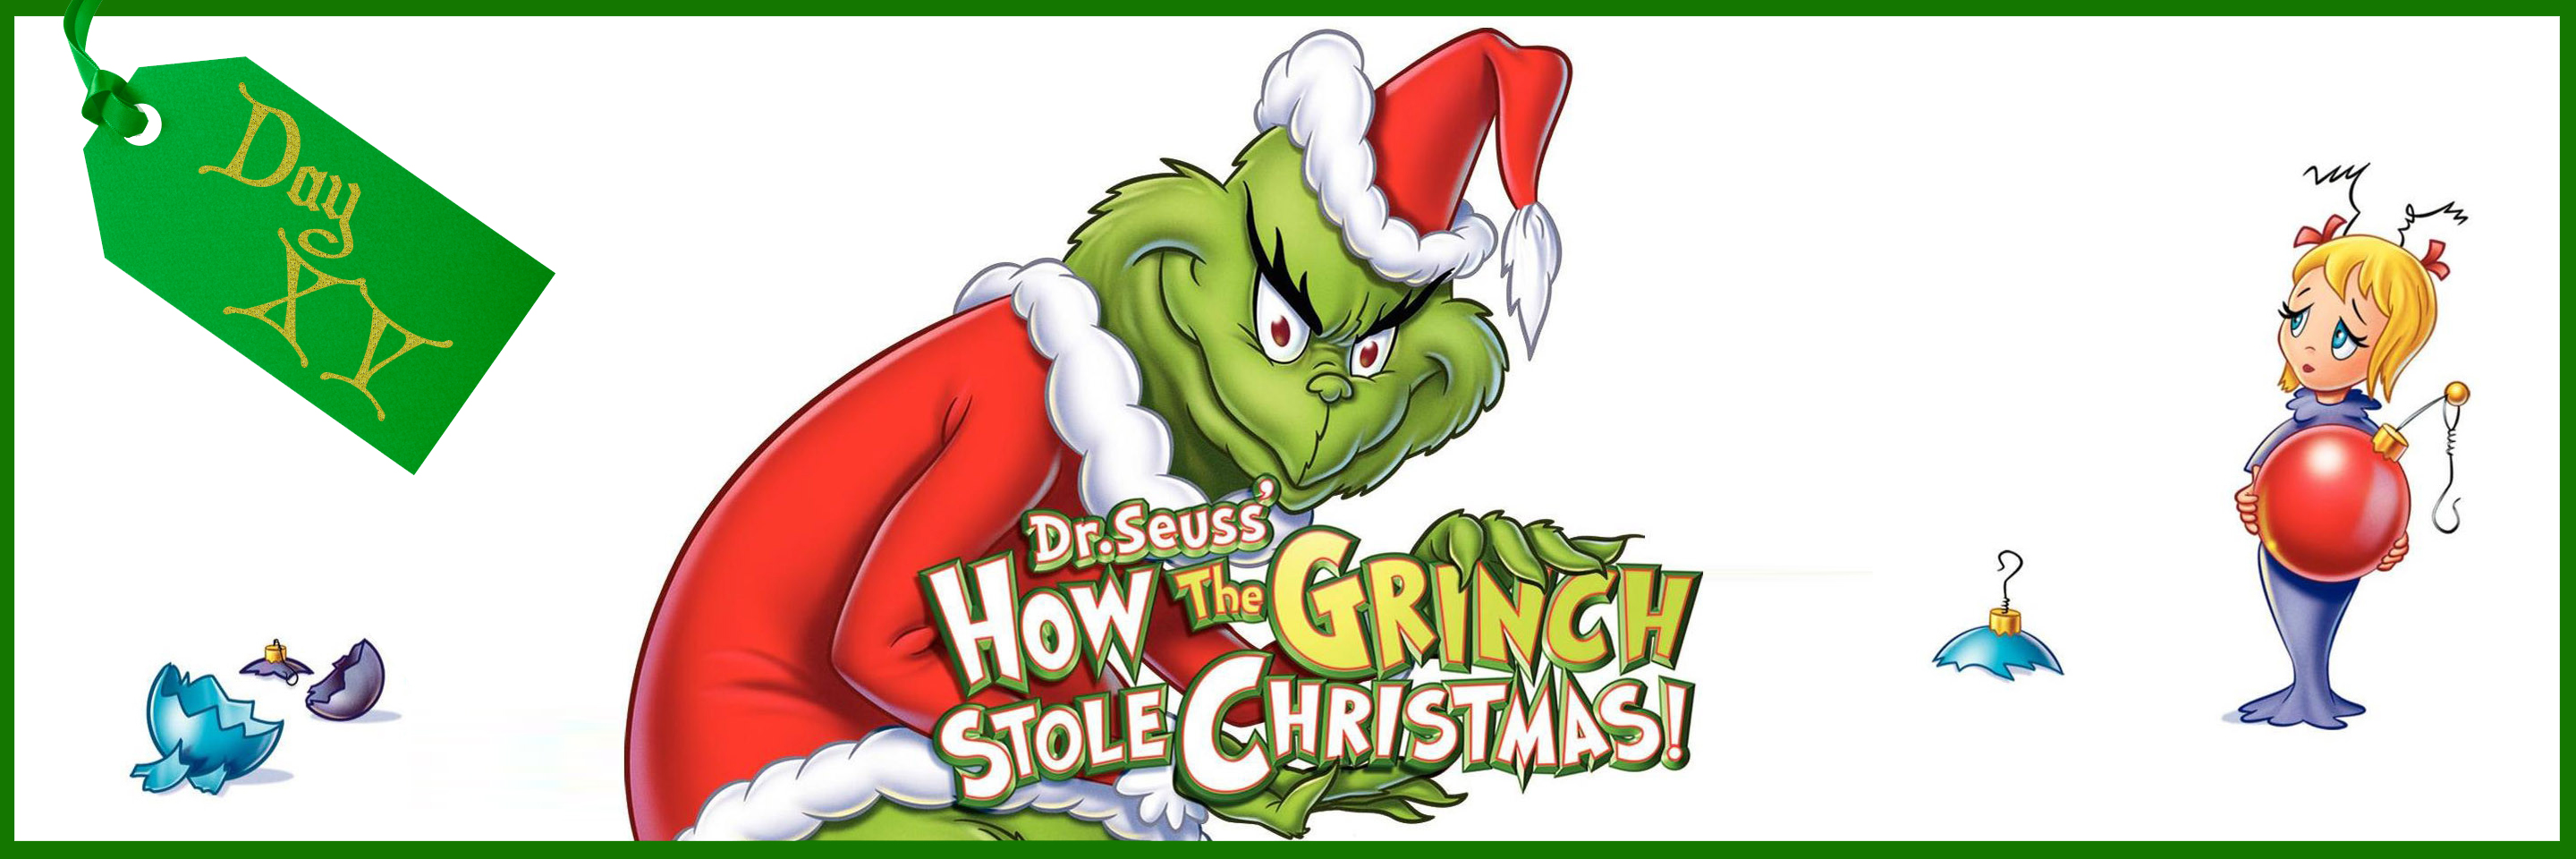 How The Grinch Stole Christmas 1966 Movie Poster.How The Grinch Stole Christmas Archives